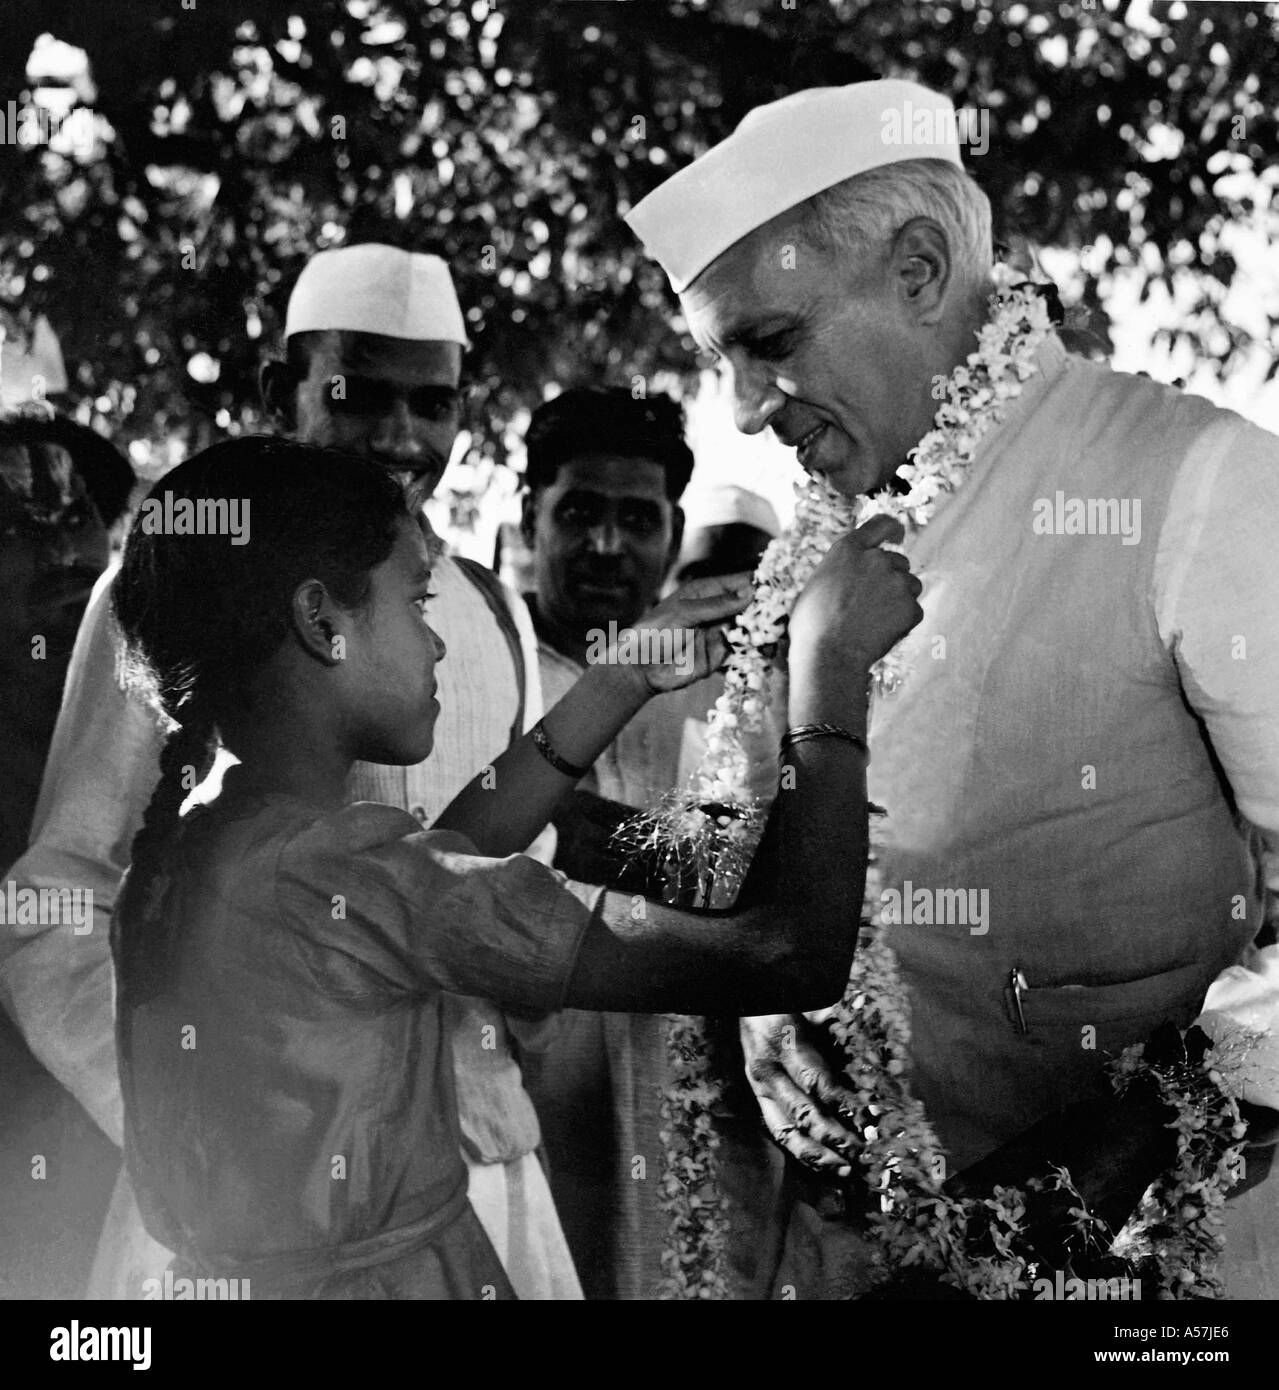 PCP030 Pandit Jawaharlal Nehru being garlanded by small girl on visit to rural India Uttar Pradesh India 1953 - Stock Image